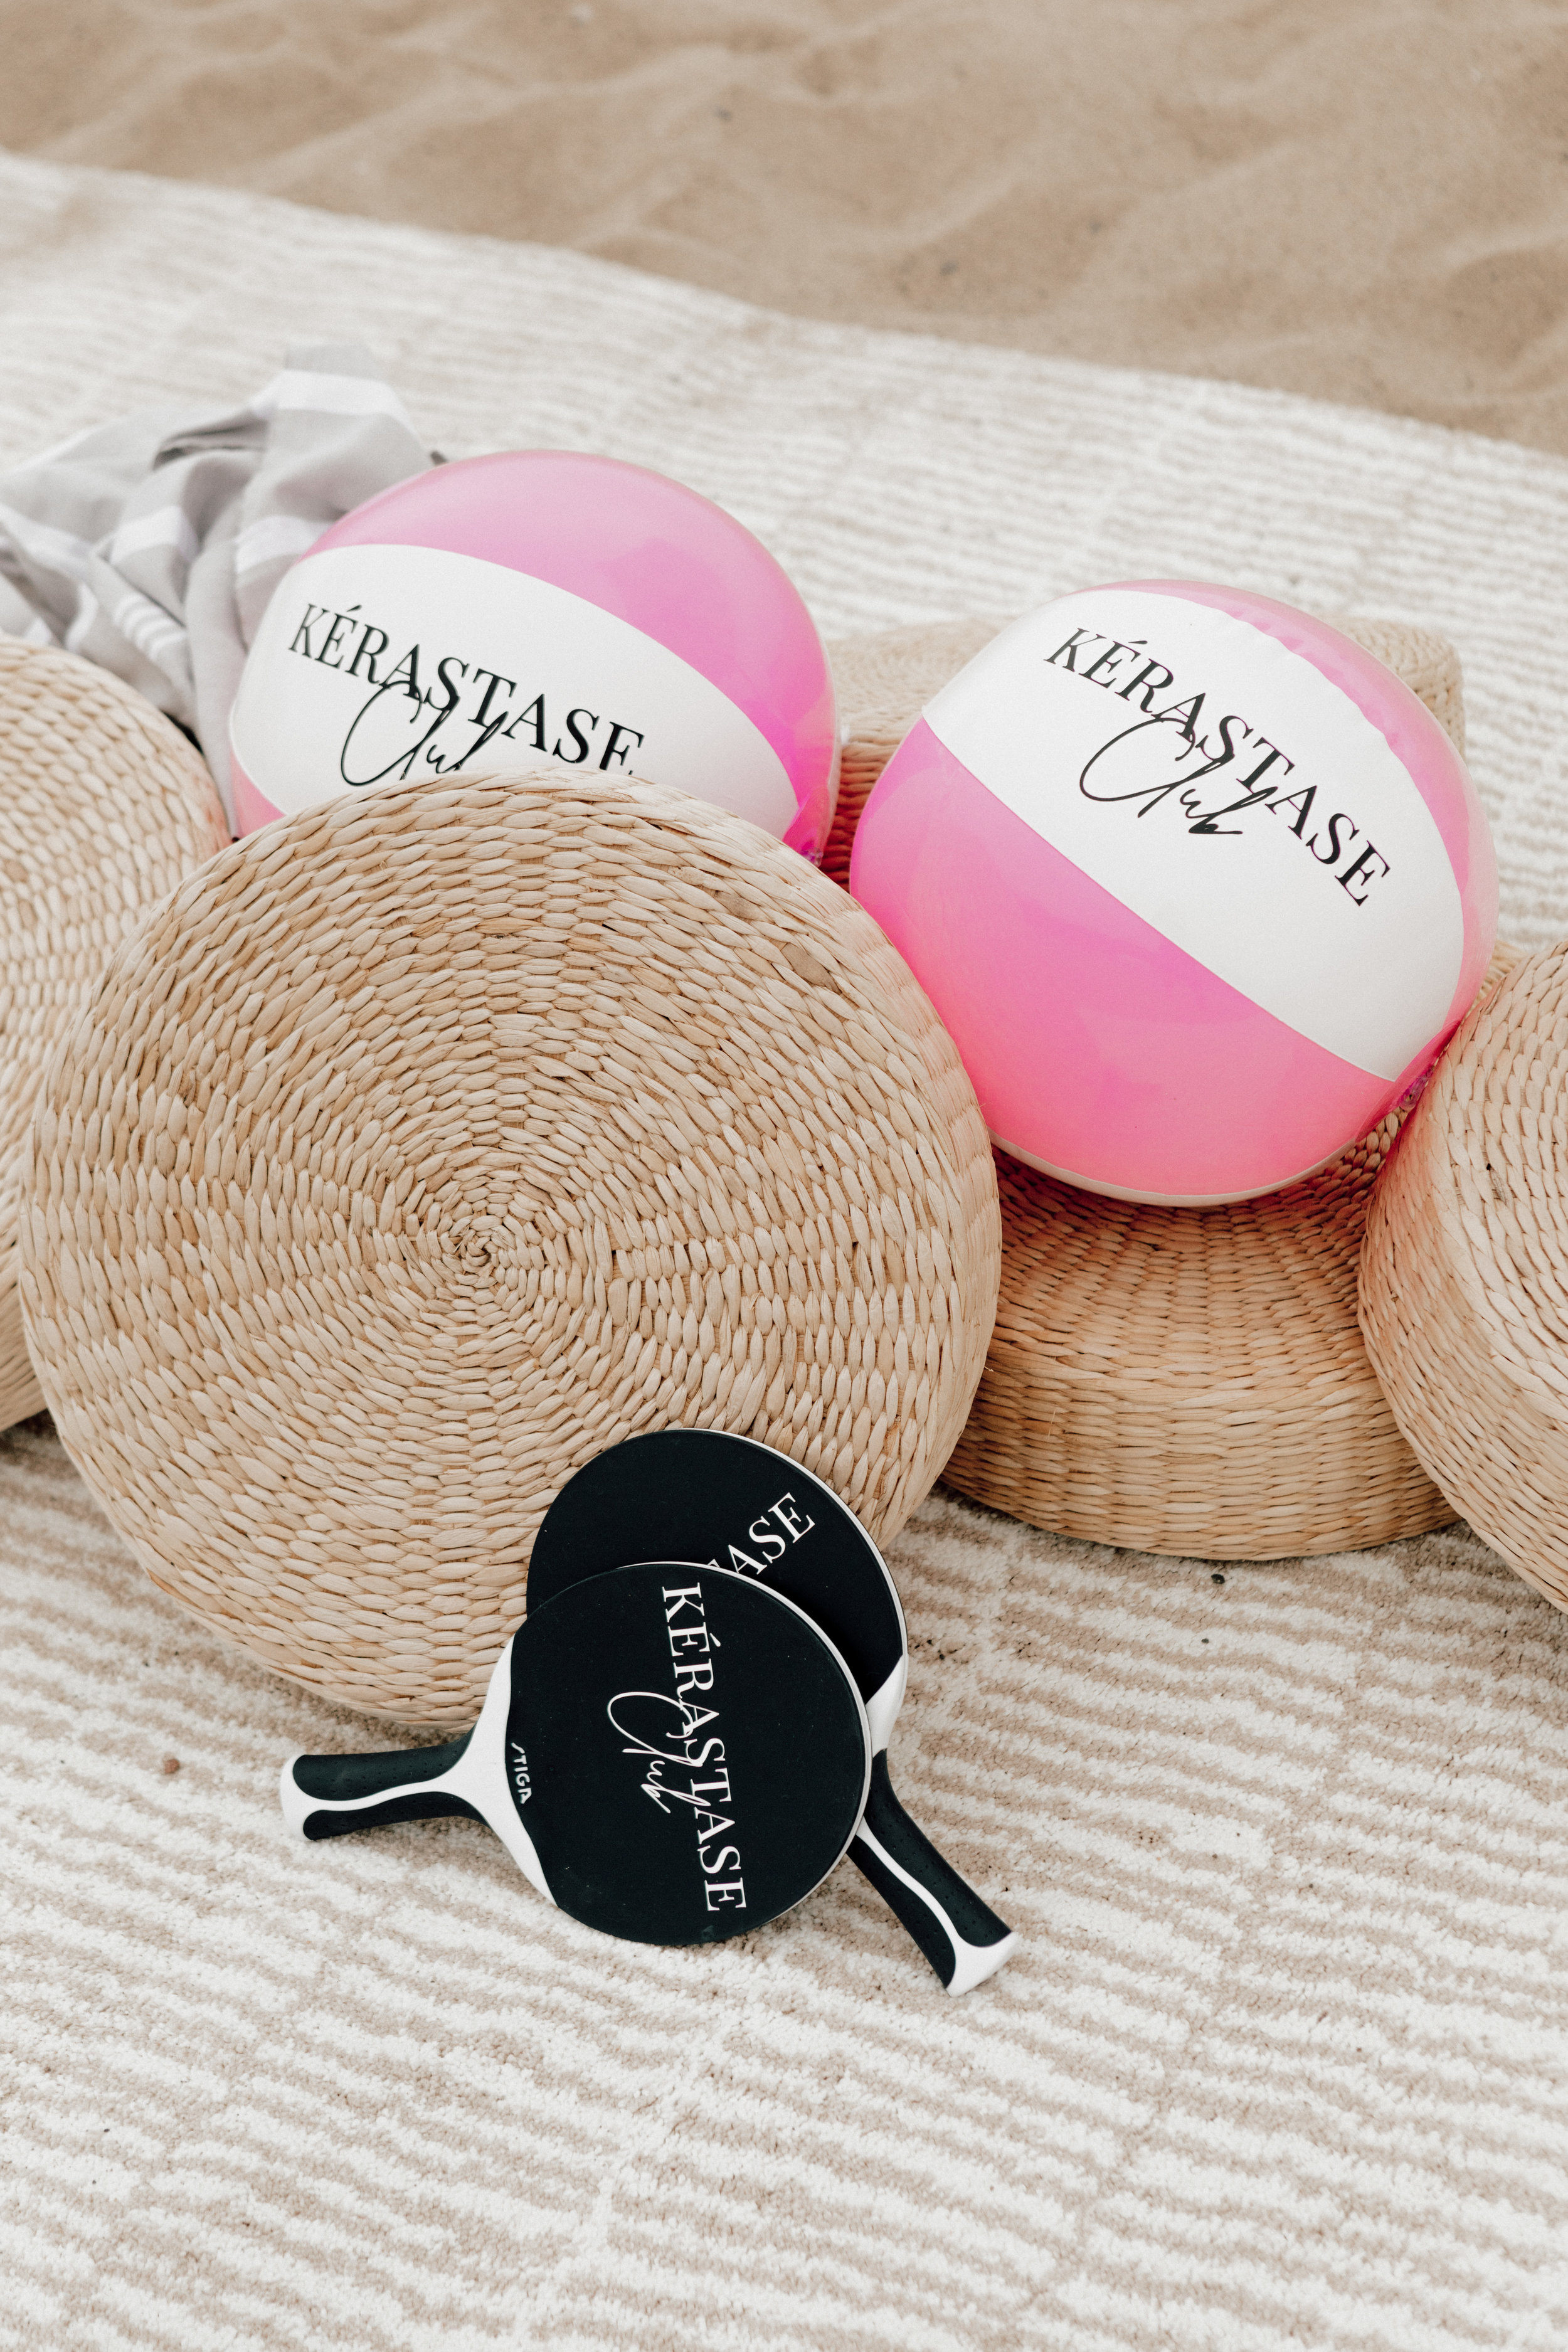 Kérastase Beach Club Event -